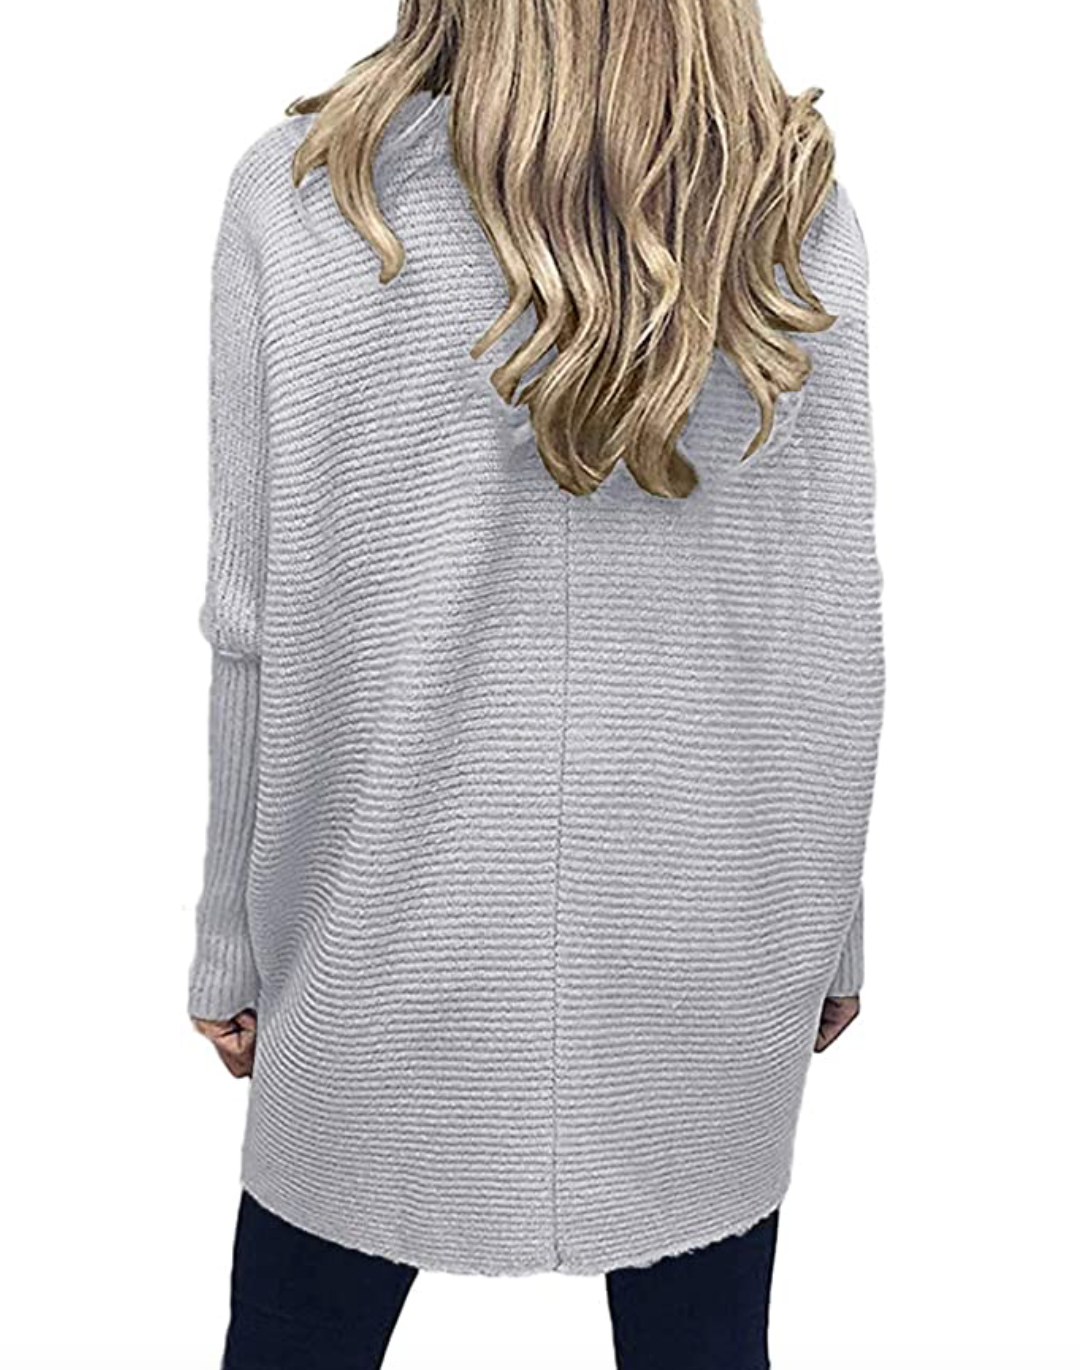 THE ALL THAT RIBBED KNIT - HEATHER GREY